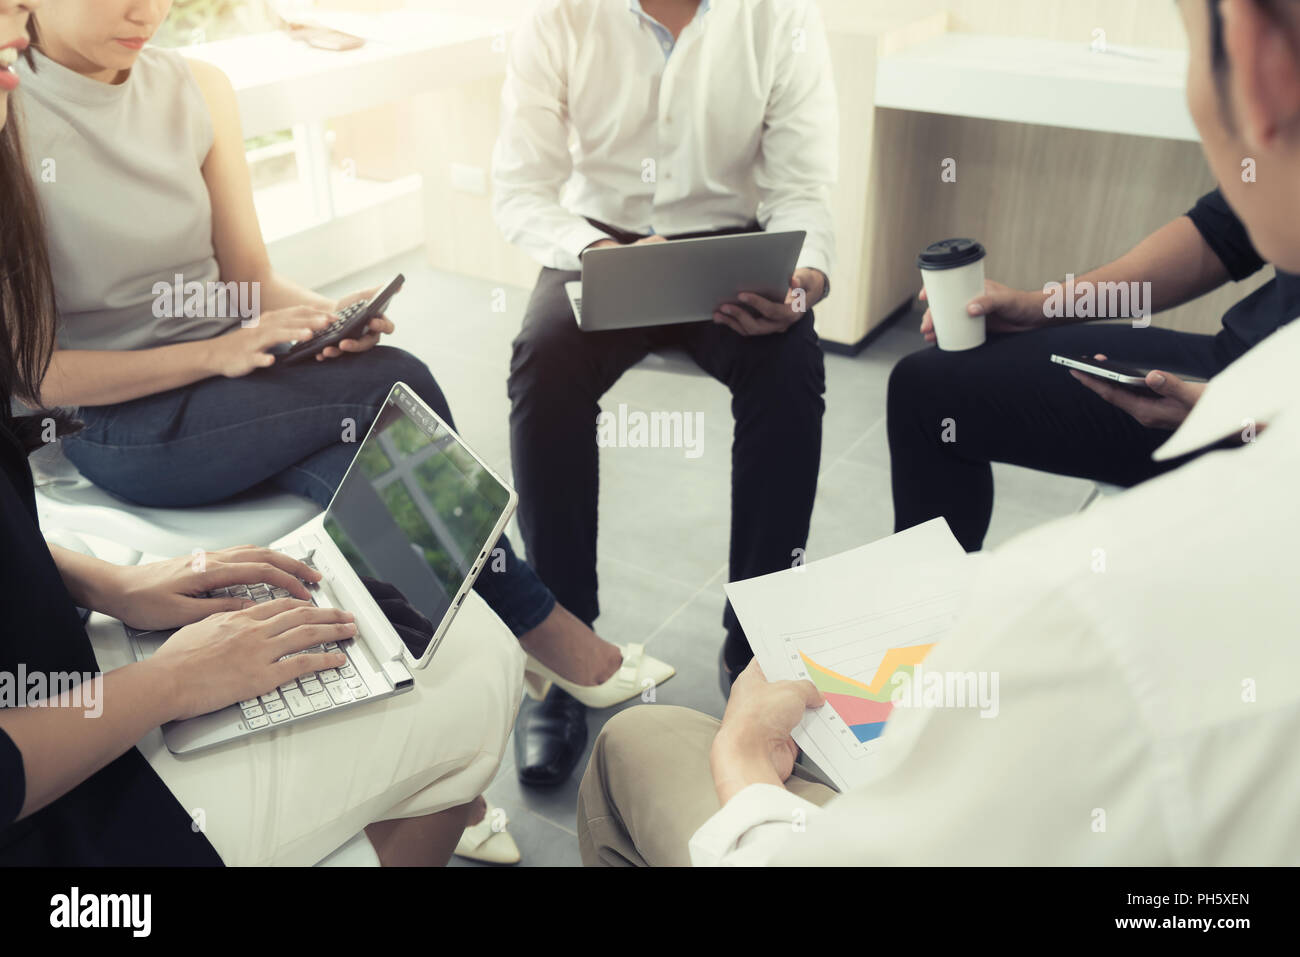 Casual busniess people meeting at modern office. Business team coworkers sharing business report document. - Stock Image